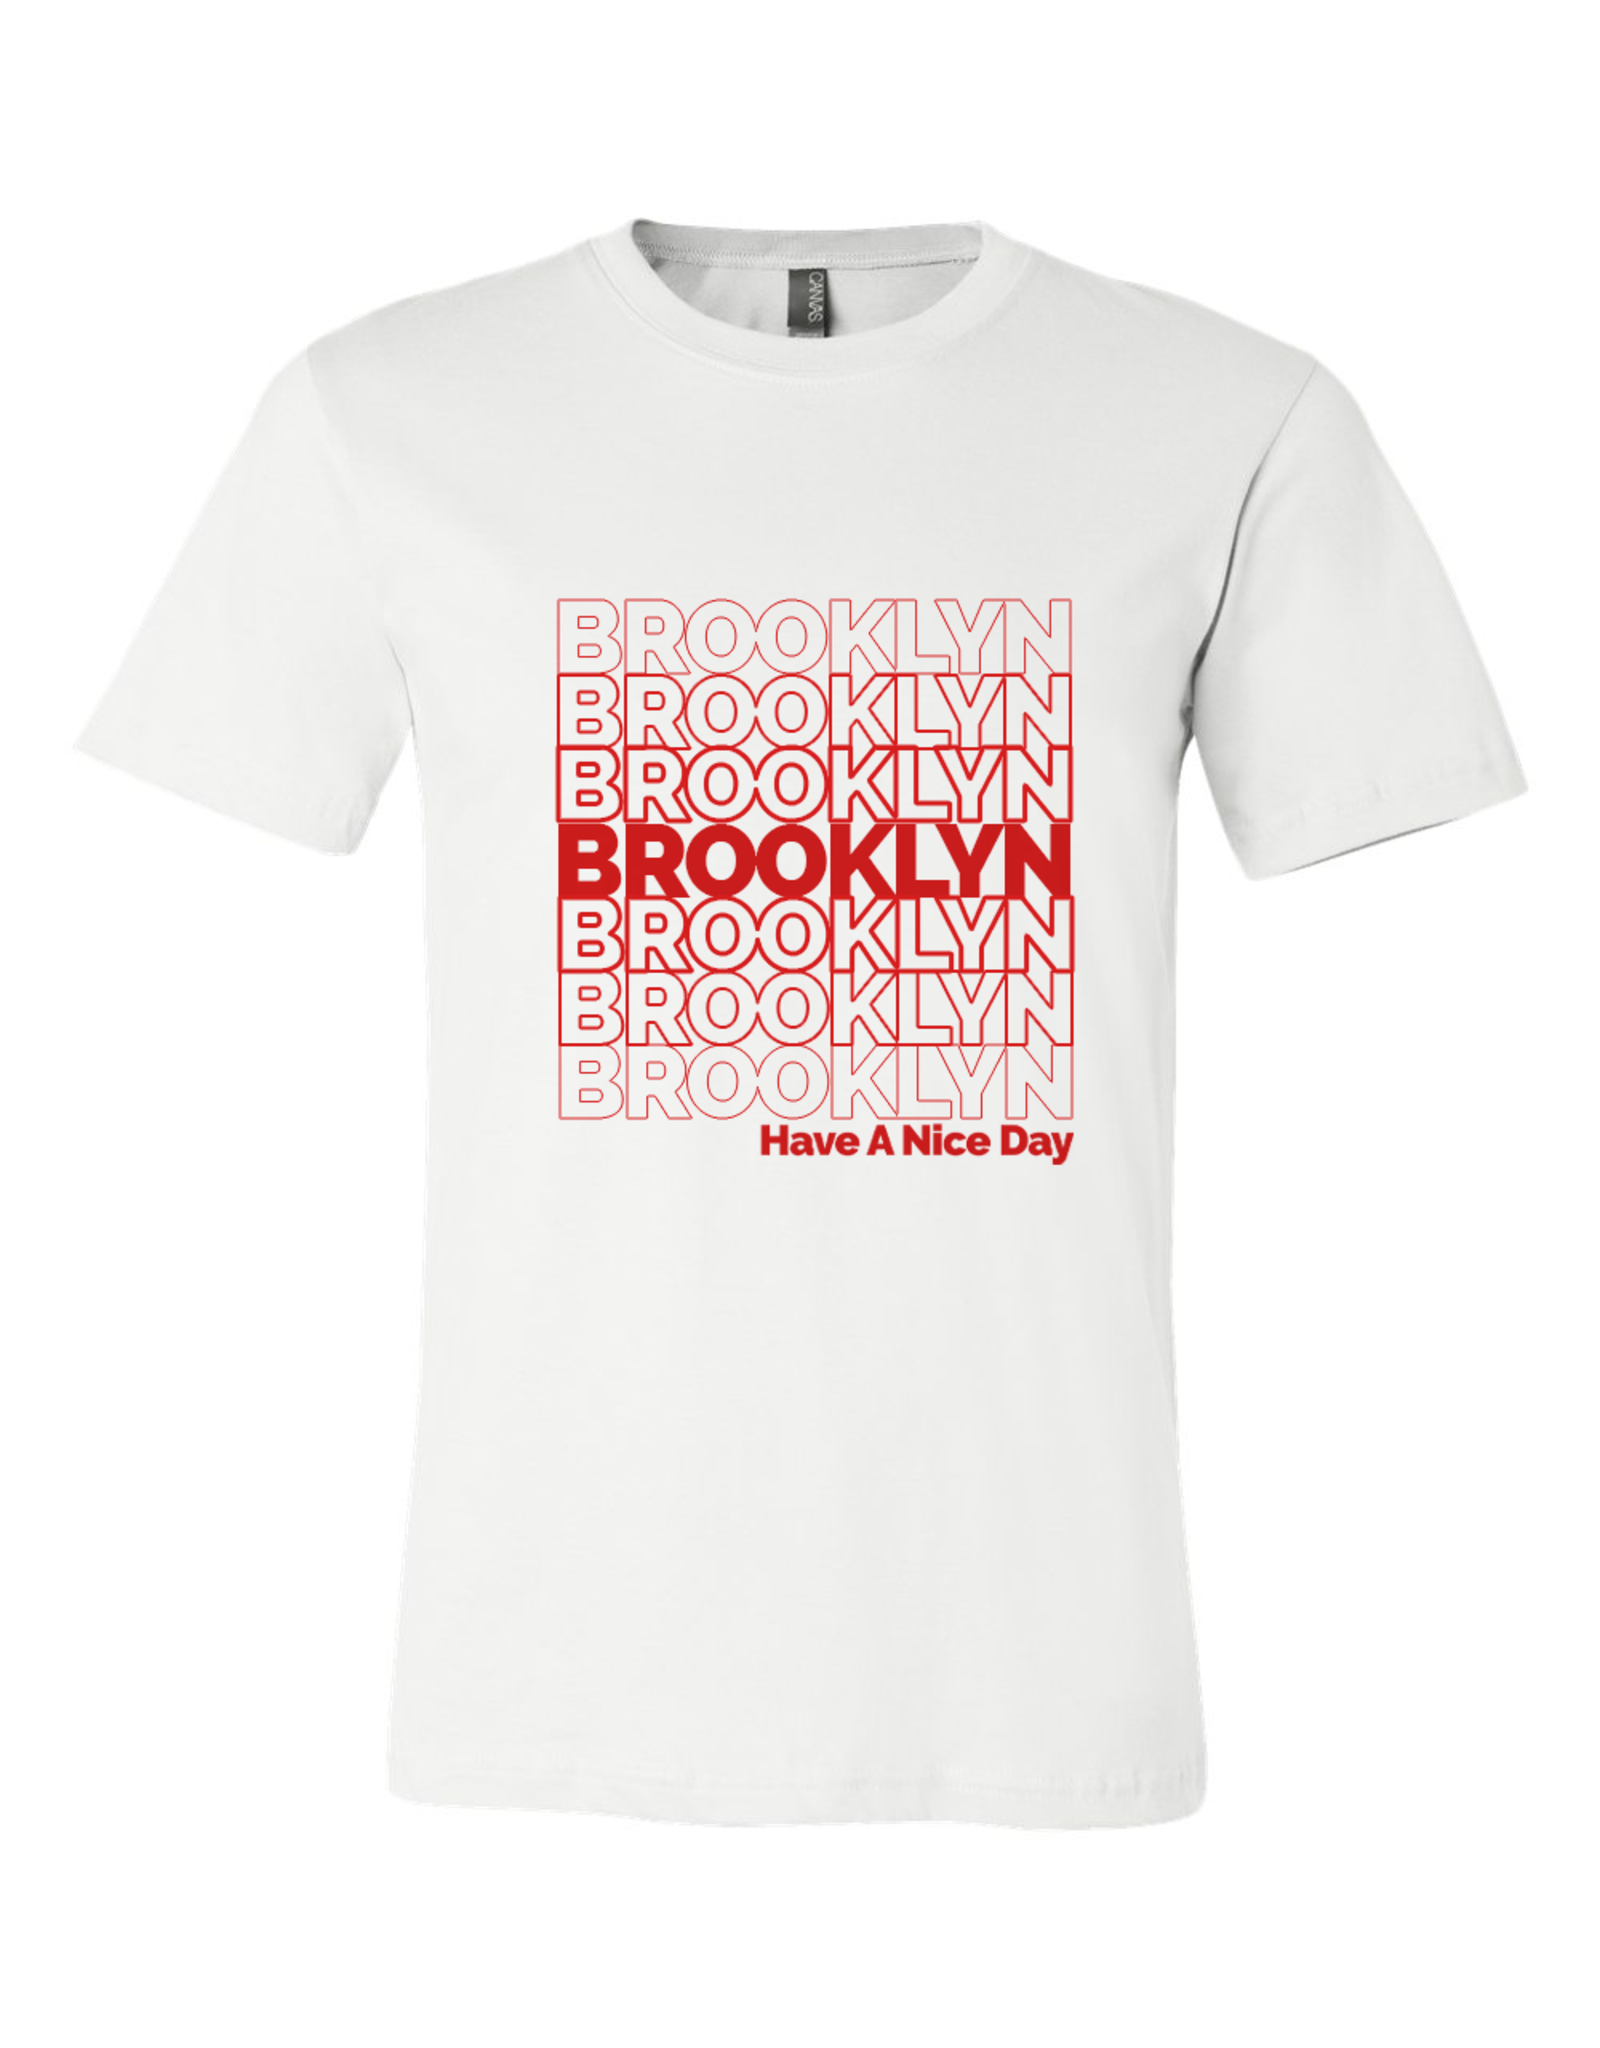 Exit9 Gift Emporium Brooklyn Repeating Pattern T-Shirt